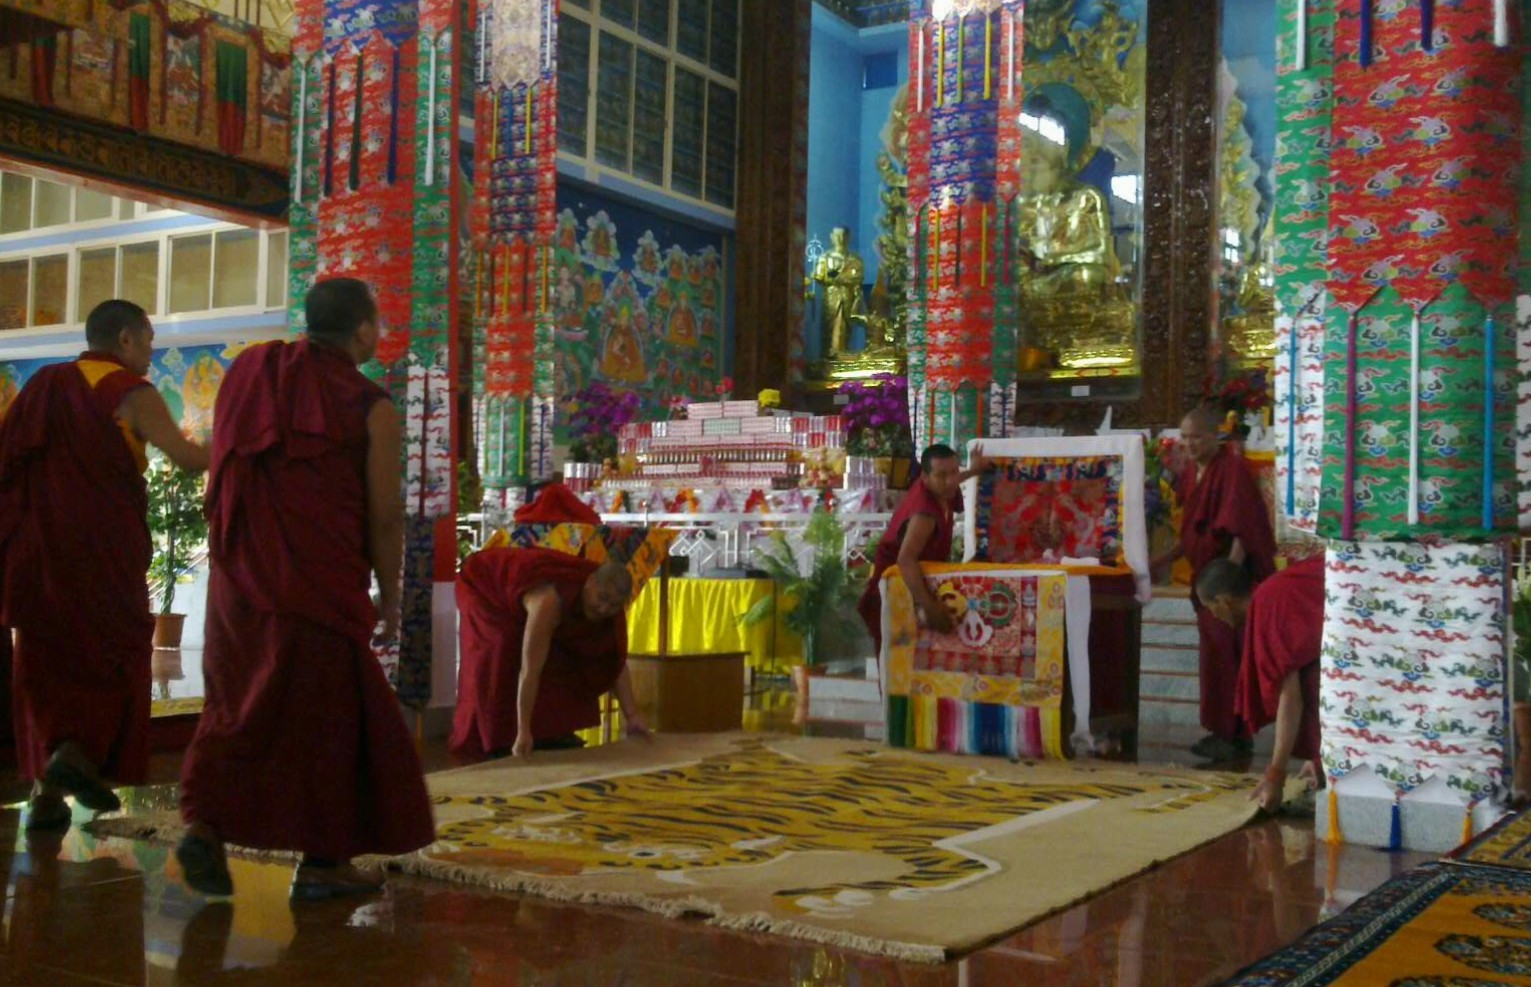 Preparations for the 7th Panglung Khuten to take trance of Dorje Shugden, Setrap, Jowo Chingkara and Kache Marpo to bless the new monastery